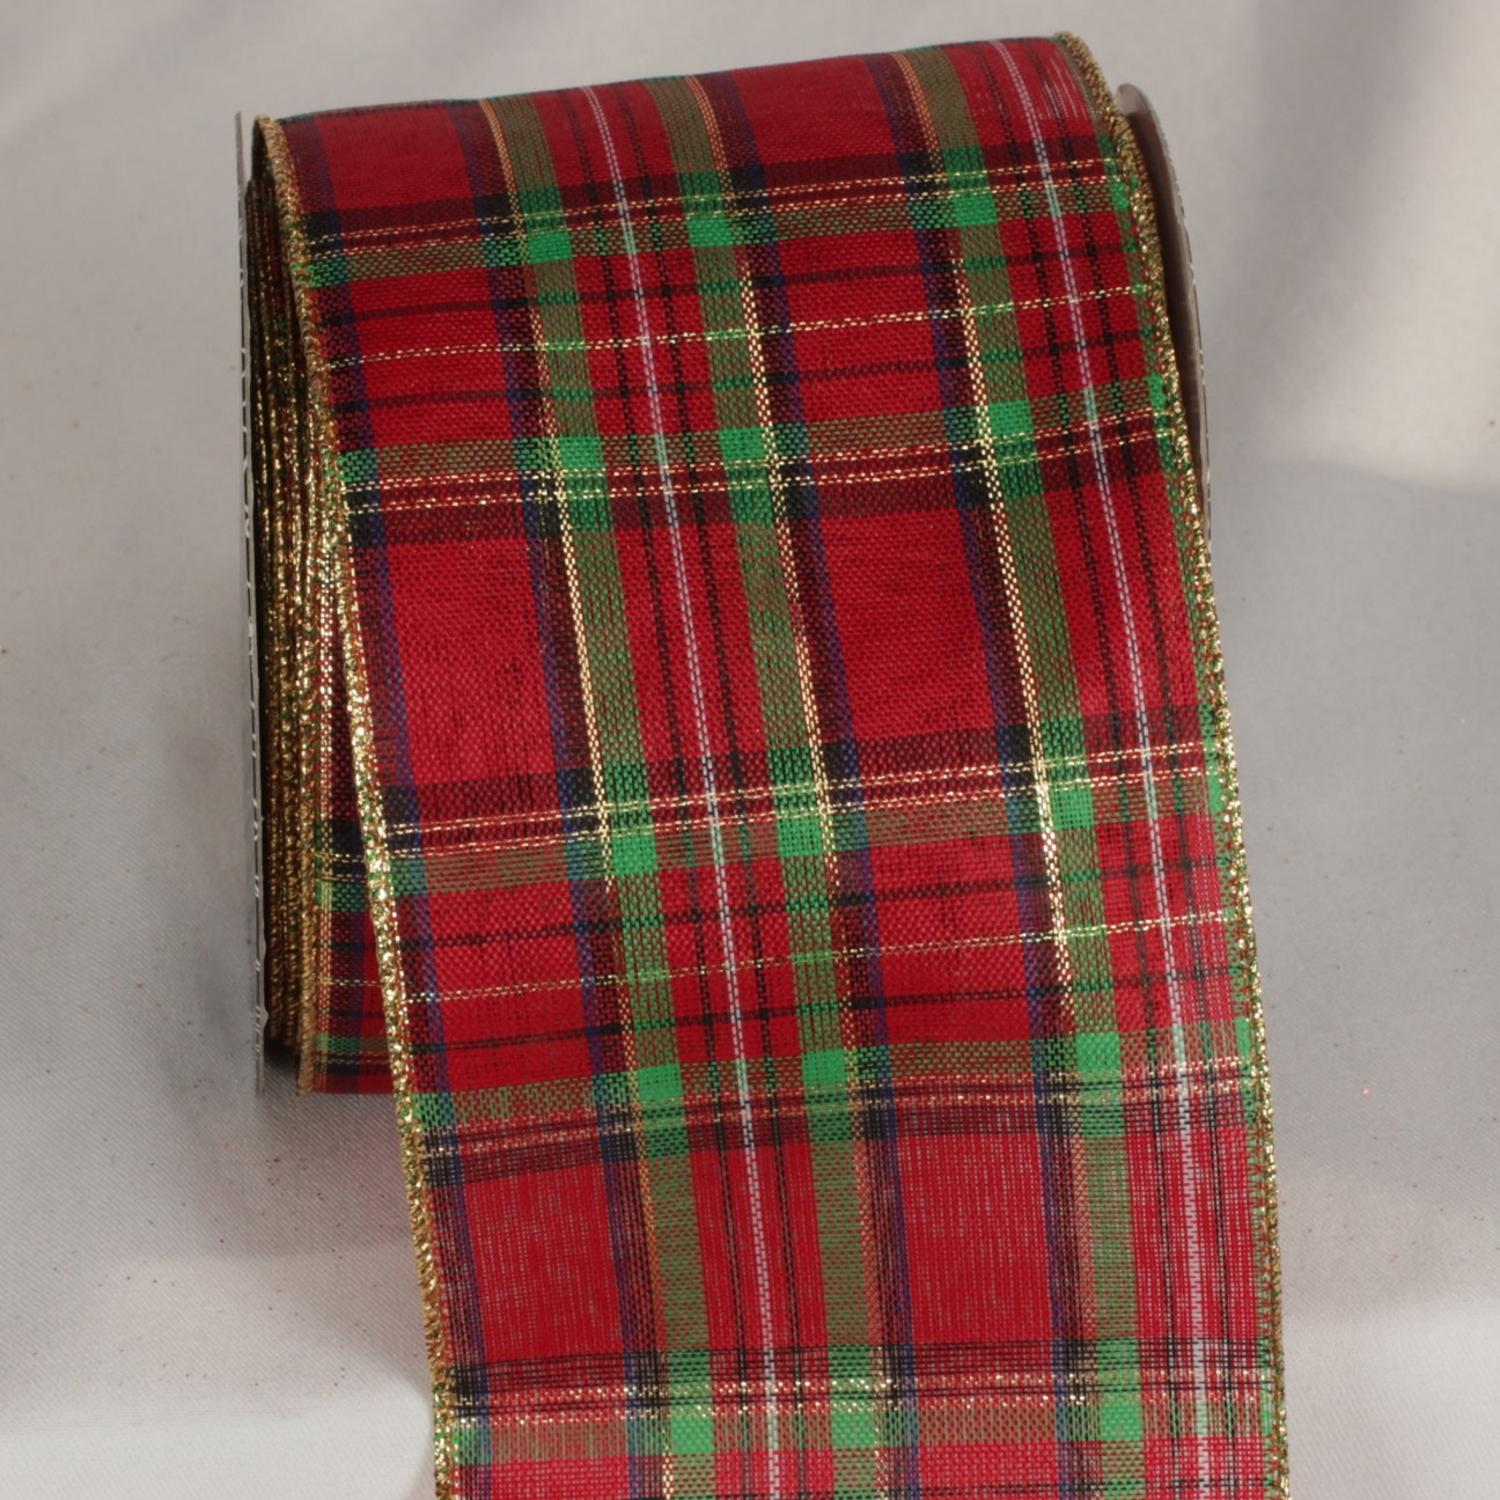 "Shimmering Red, Gold and Green Plaid Tartan Wired Craft Ribbon 4"" x 20 Yards"